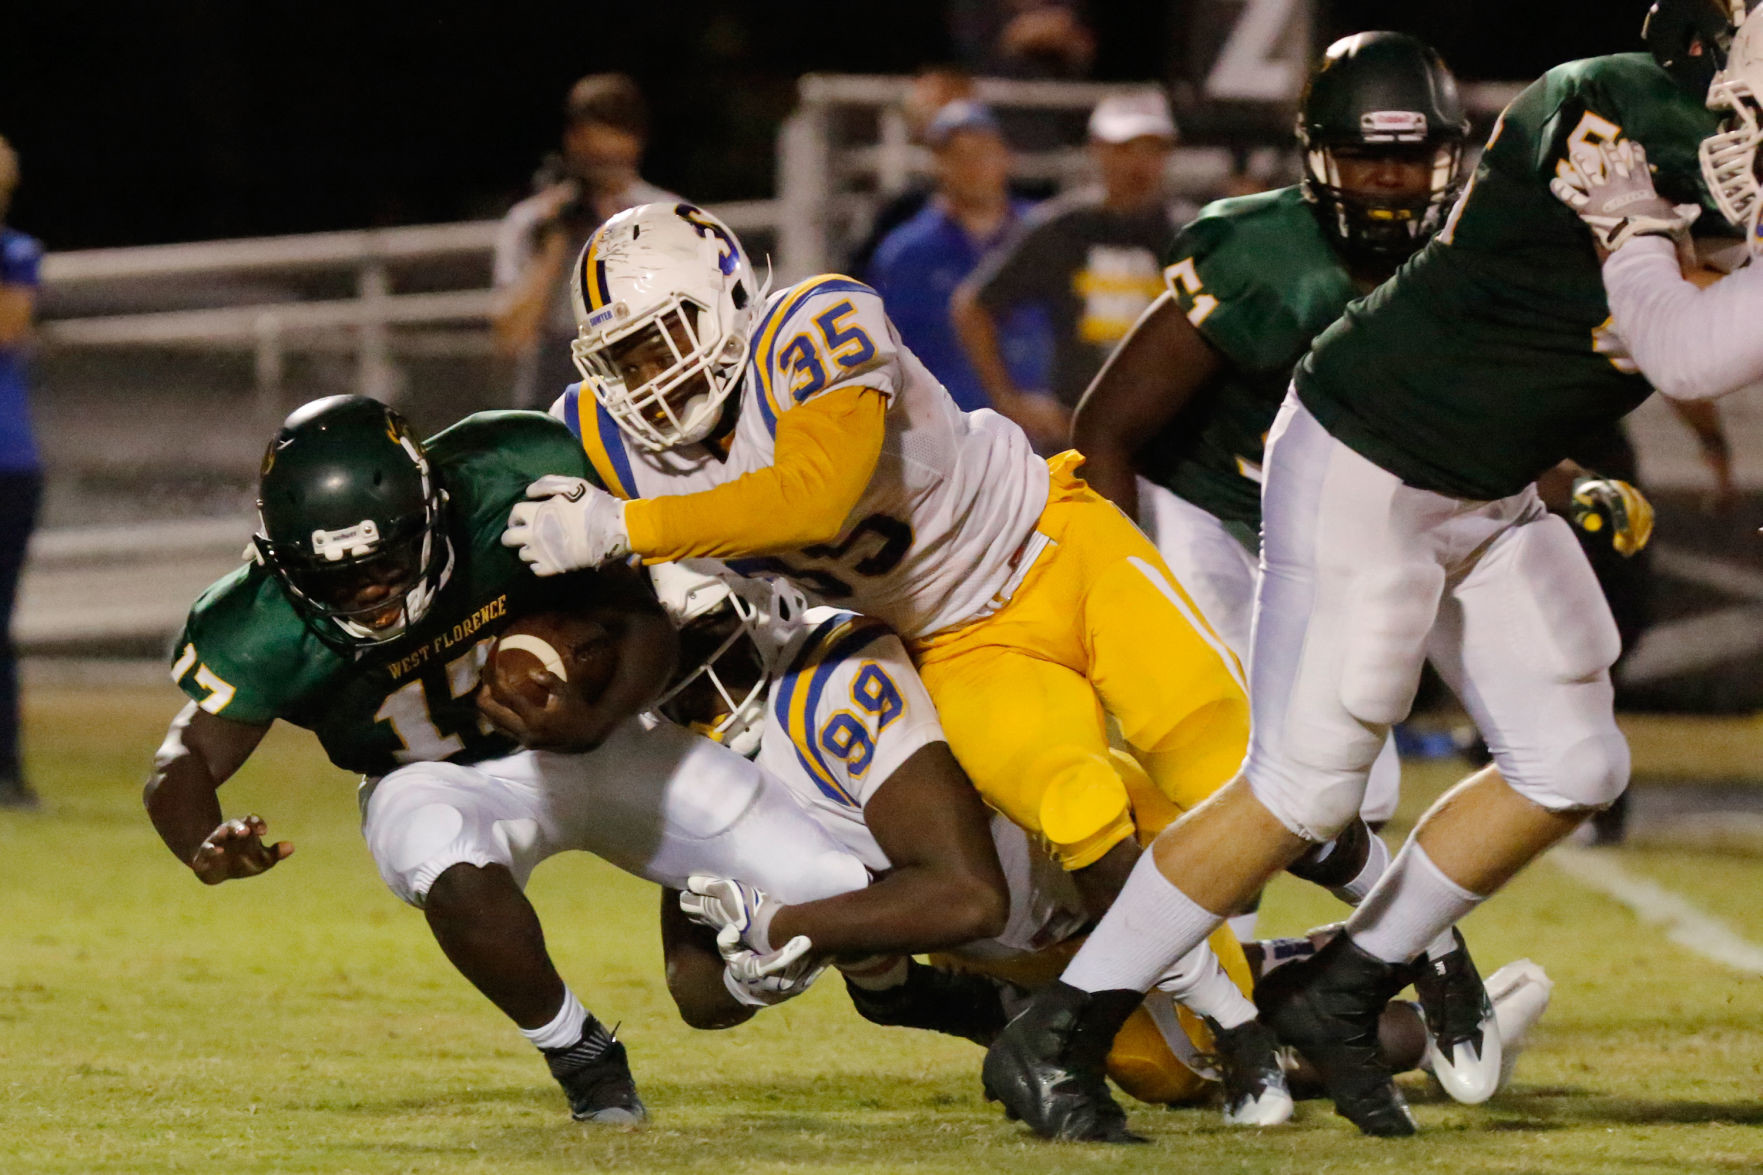 Sumter defensive tackle Ronald McGee (99) and linebacker Andre Amaker (35) take down West Florence running back Ailym Ford in the Gamecocks' 44-6 victory on Friday at War Memorial Stadium in Florence.